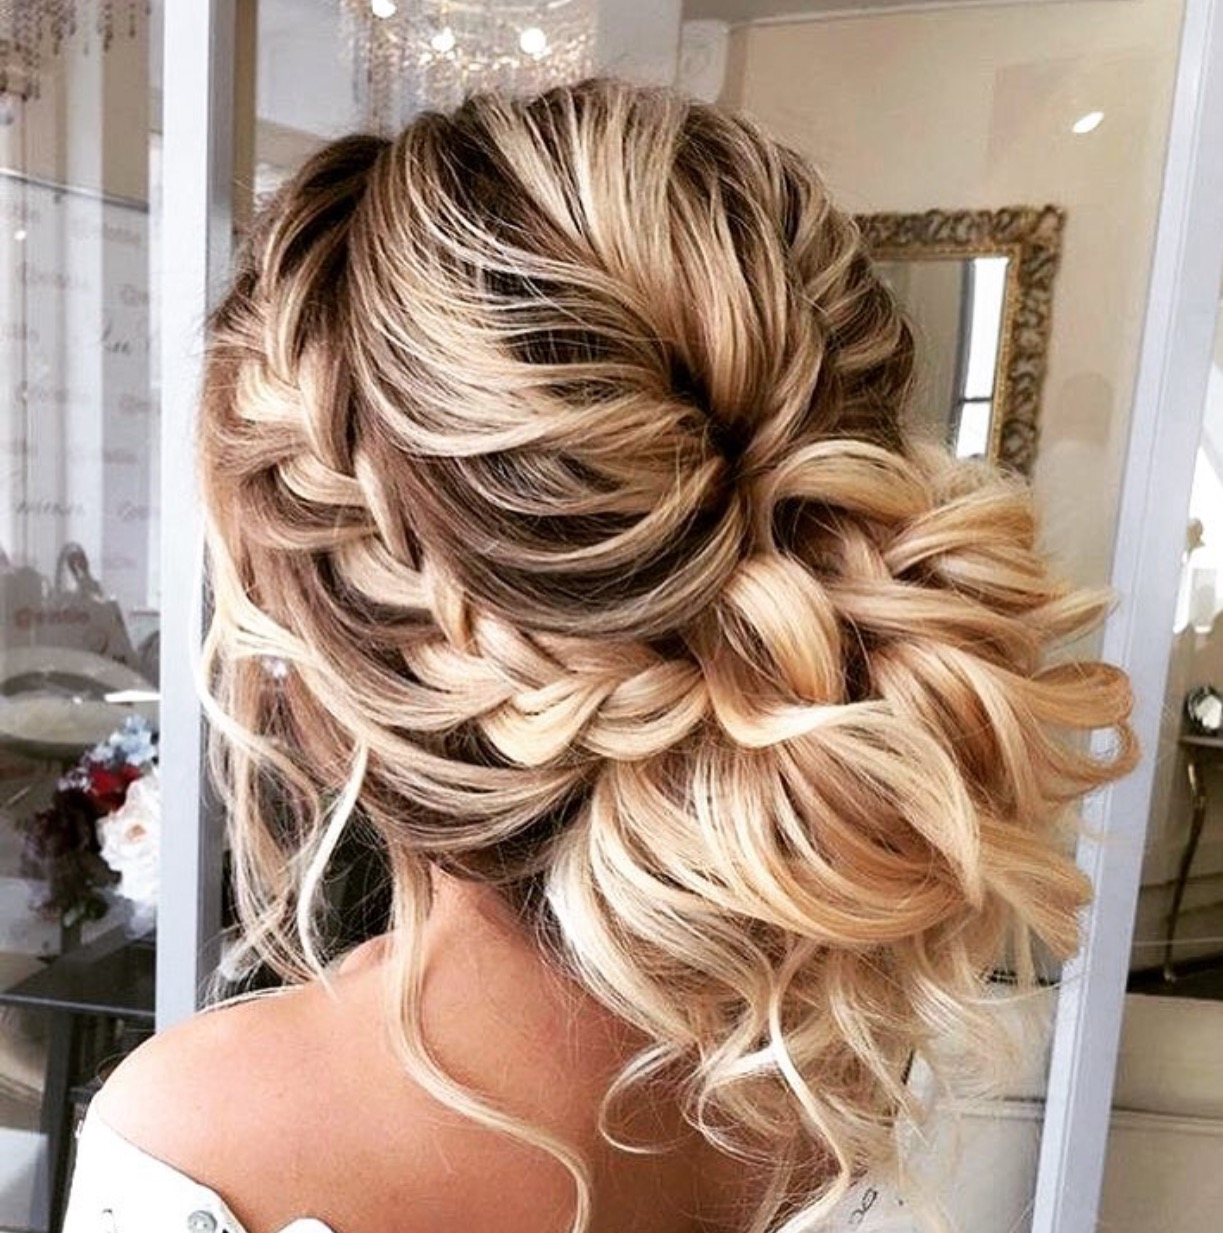 A side braid with this beautiful mess of curls from  @chilhambridal